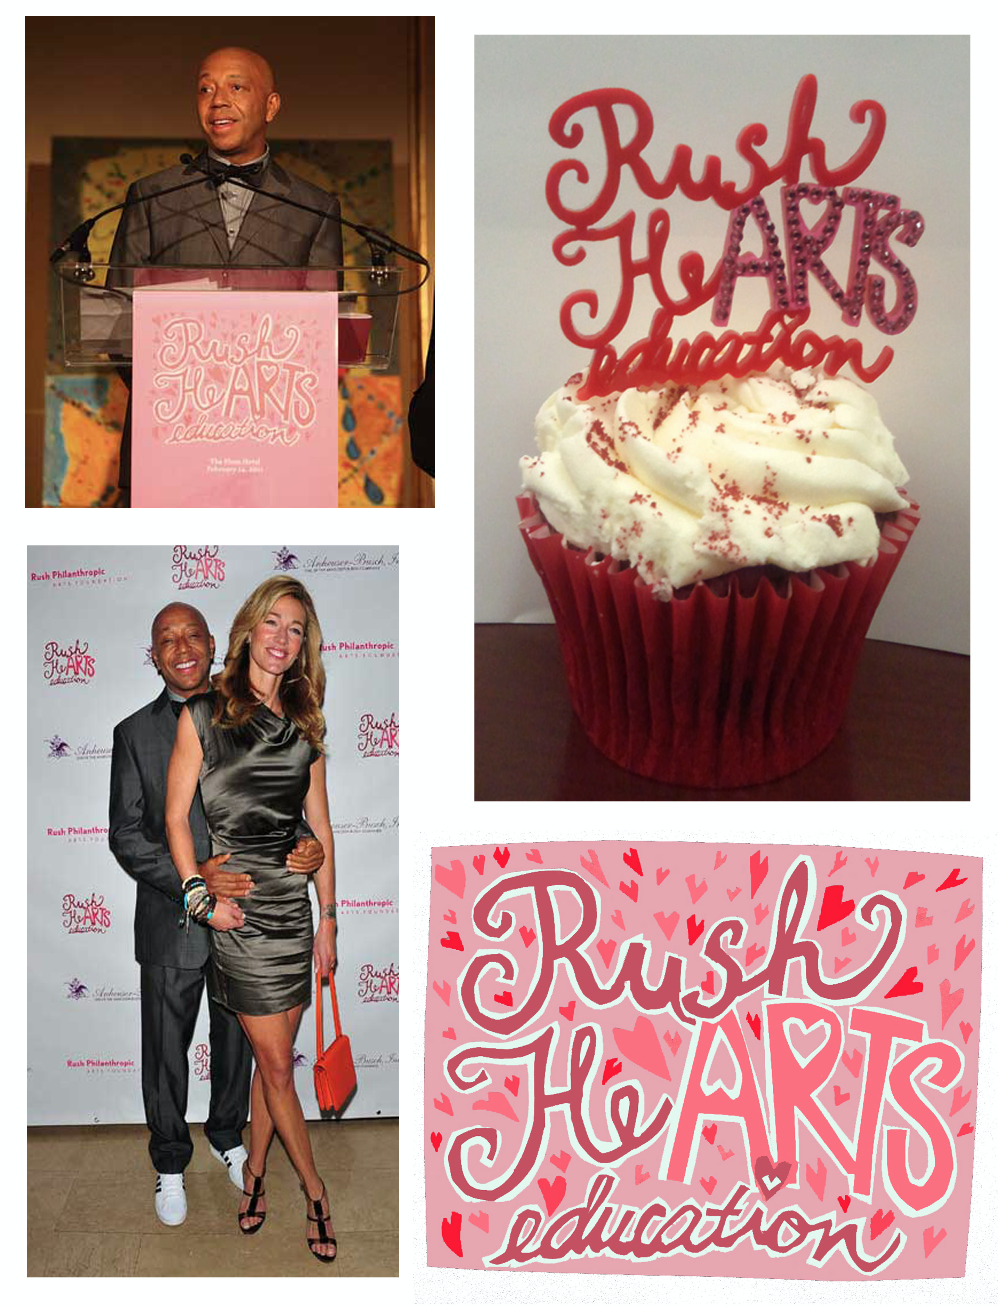 Logo for Rush Philanthropic's annual fundraiser, Rush Hearts Education, in NYC, used in print, on web, and as cupcake toppers at the event